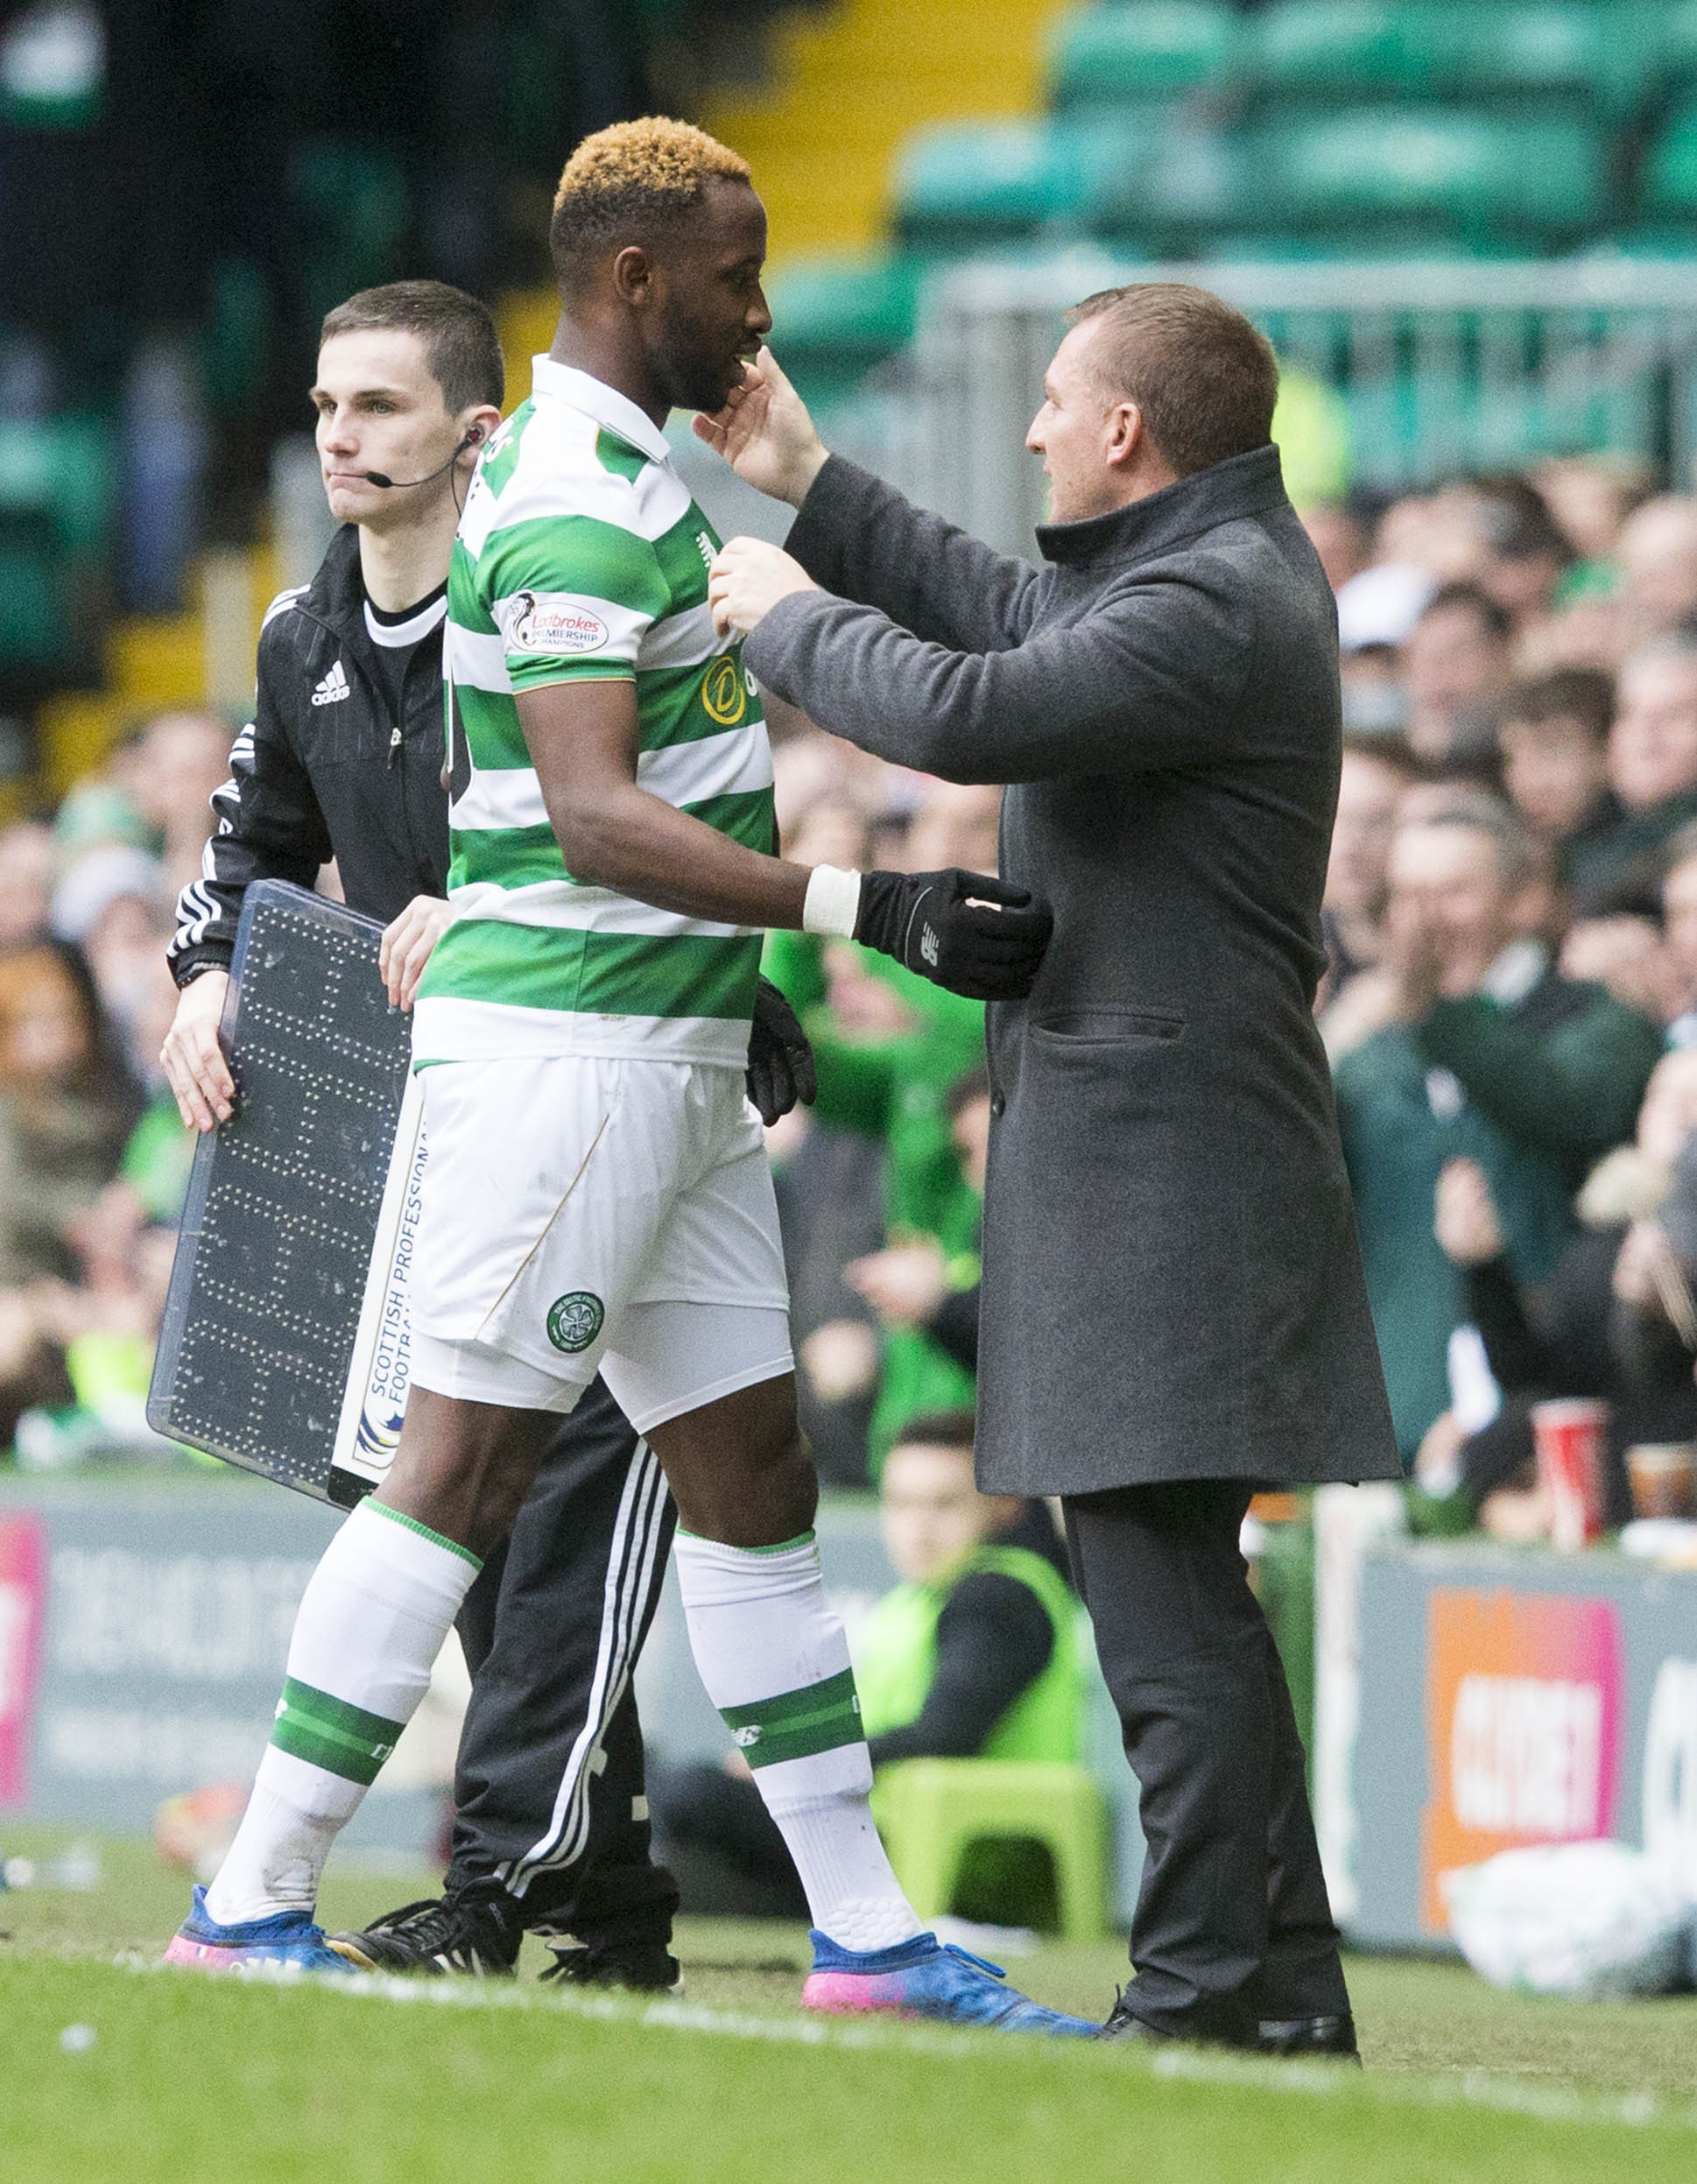 Celtic 2, Hamilton 0: Moussa Dembele at the double as Celtic extend unbeaten domestic run to 32 games